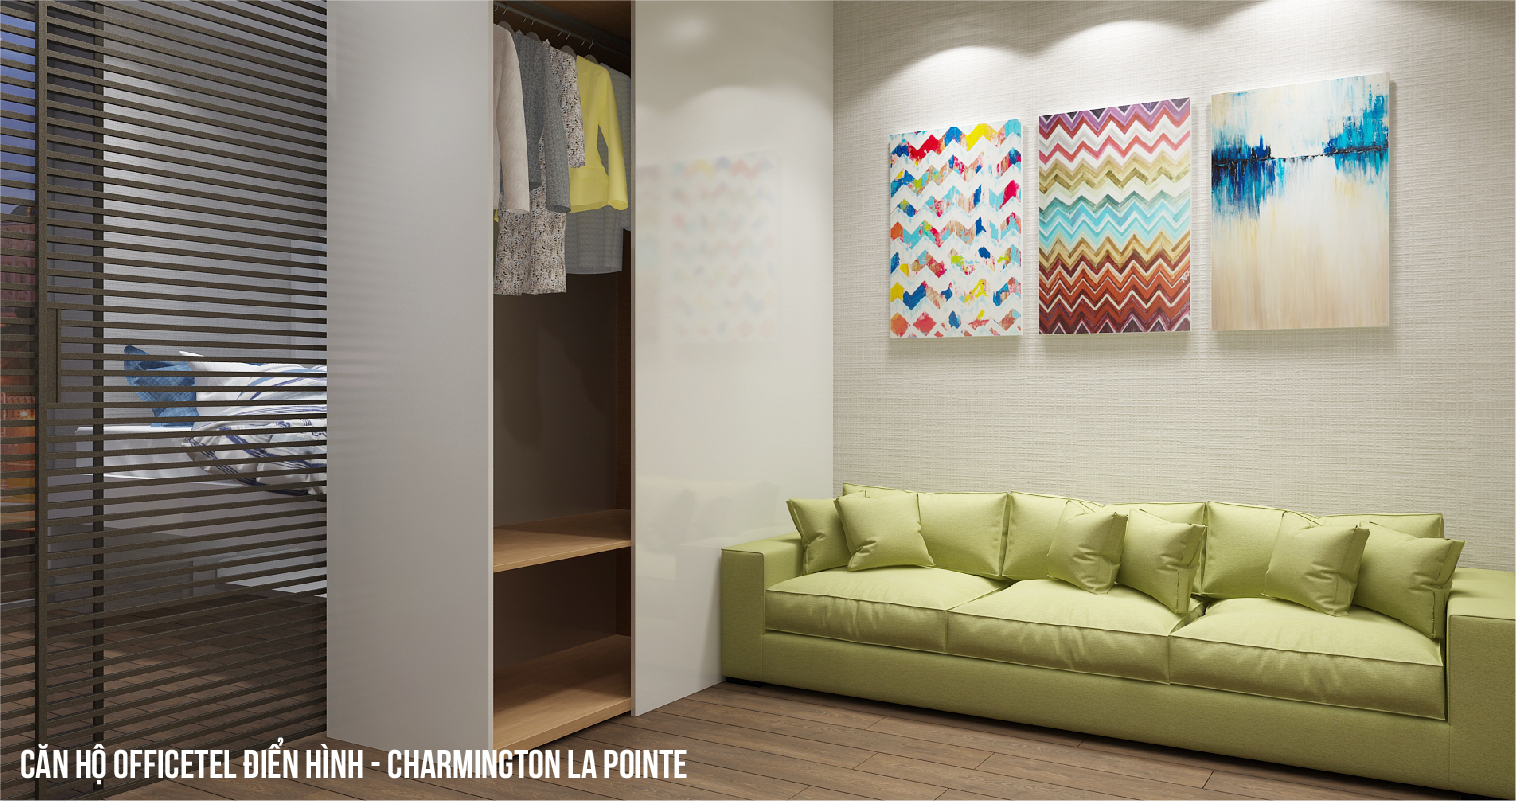 Căn hộ Officetel Charmington La Pointe 33